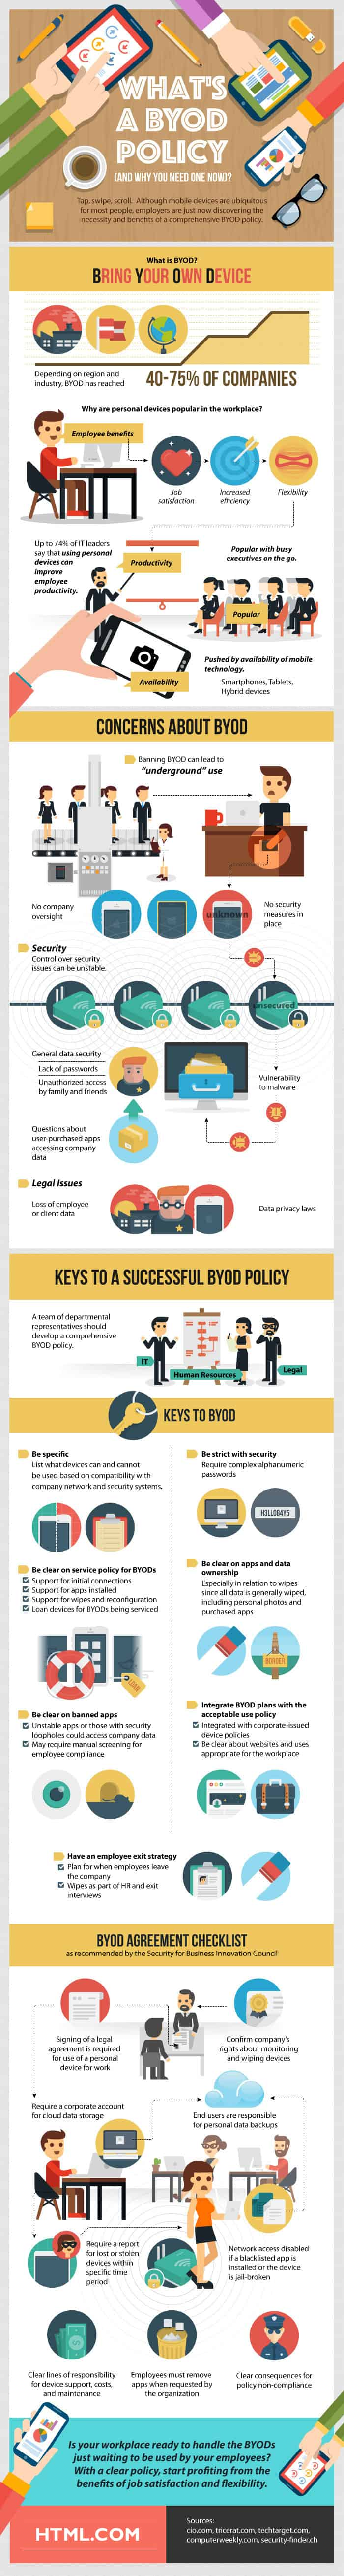 BYOD Policy infographic